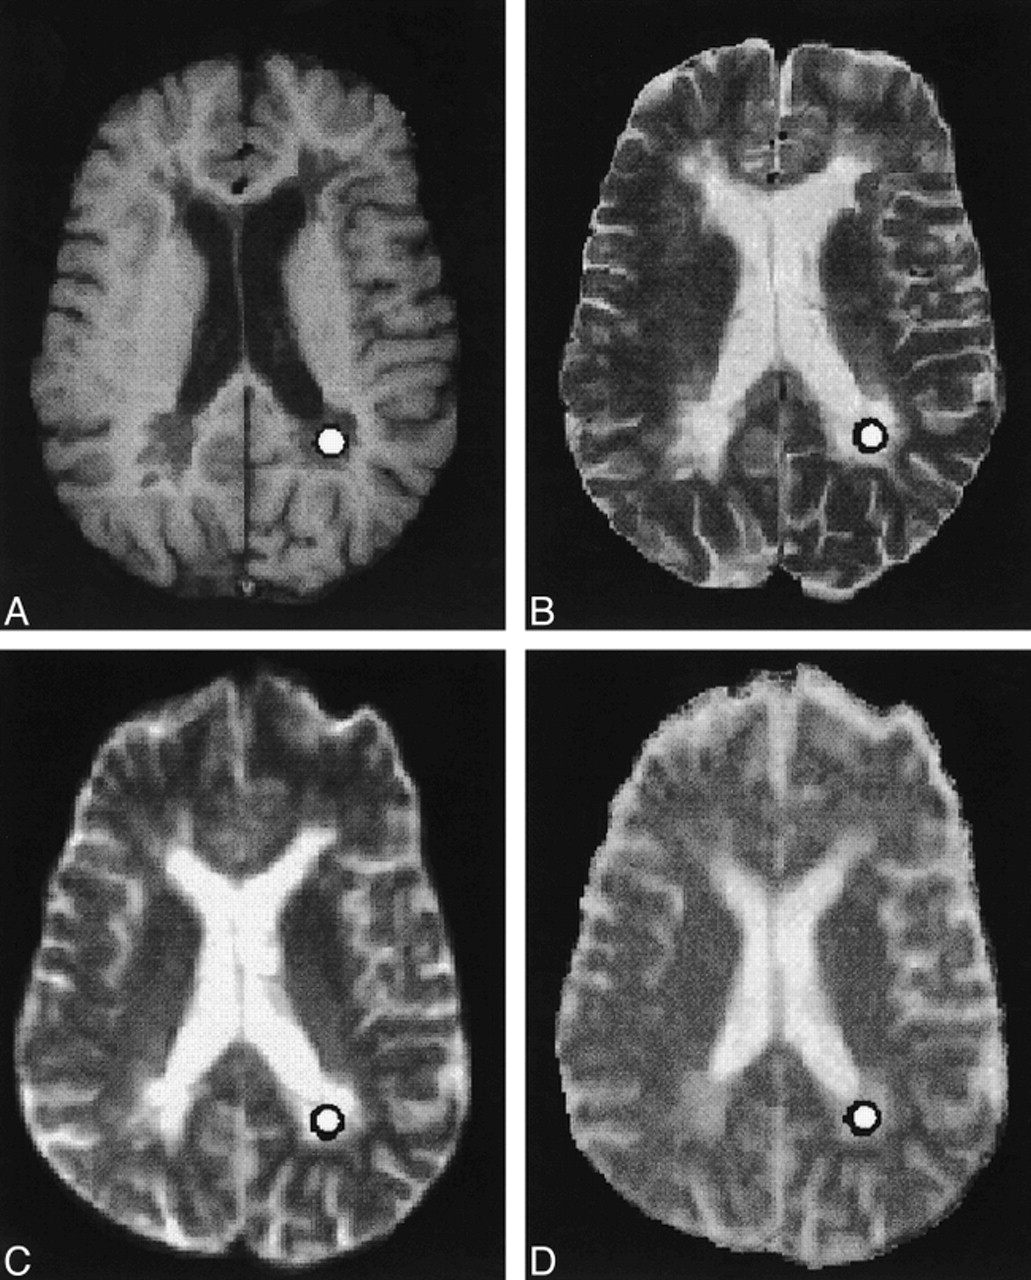 demyelinating plaques in relapsing remitting and secondary